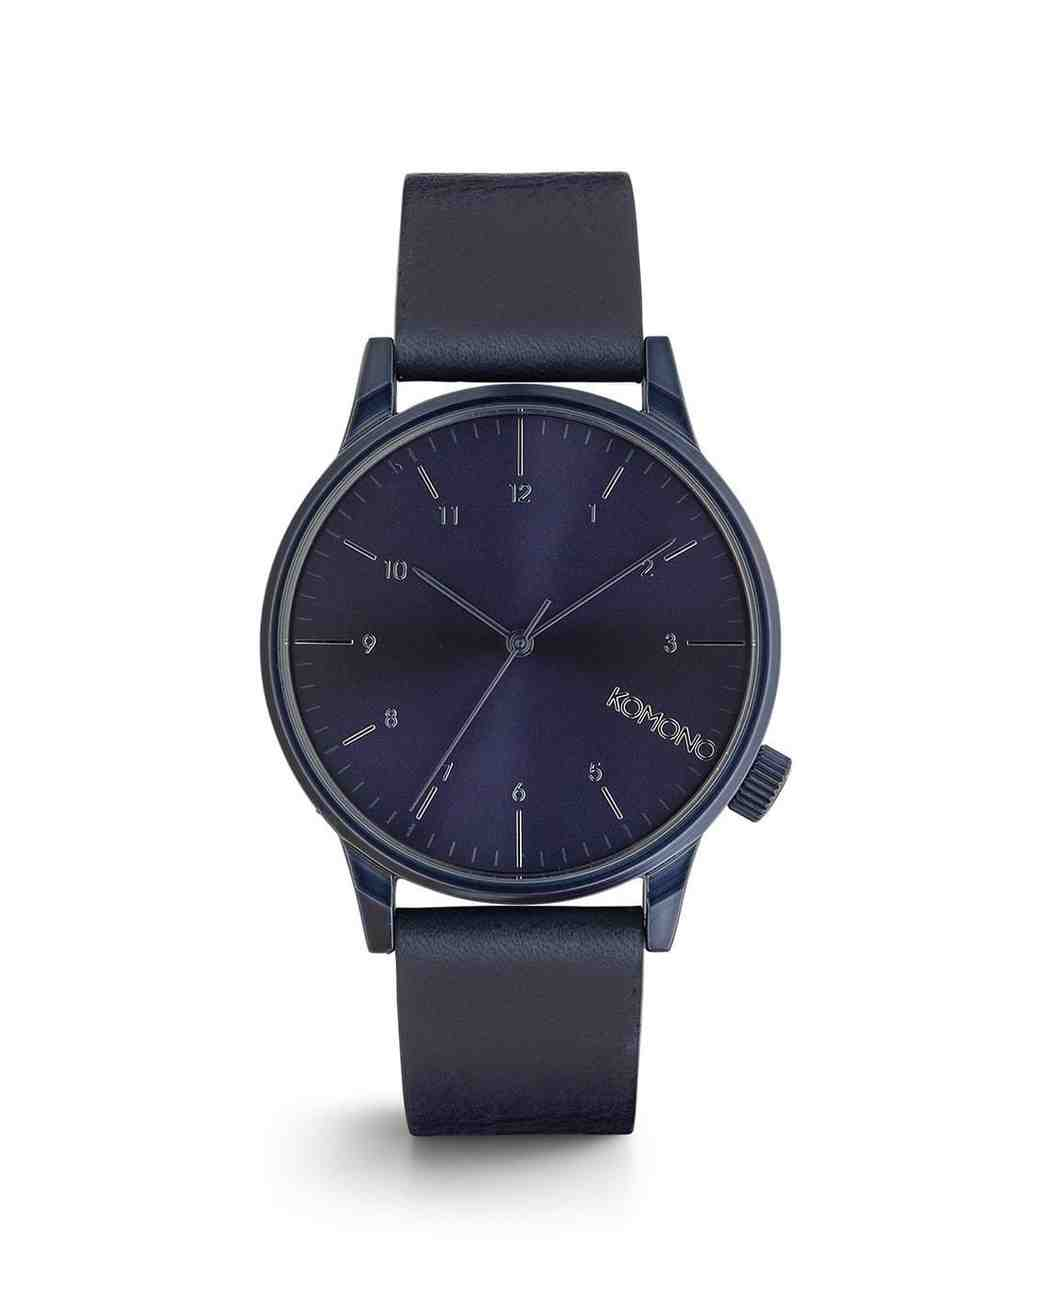 komono men's watch